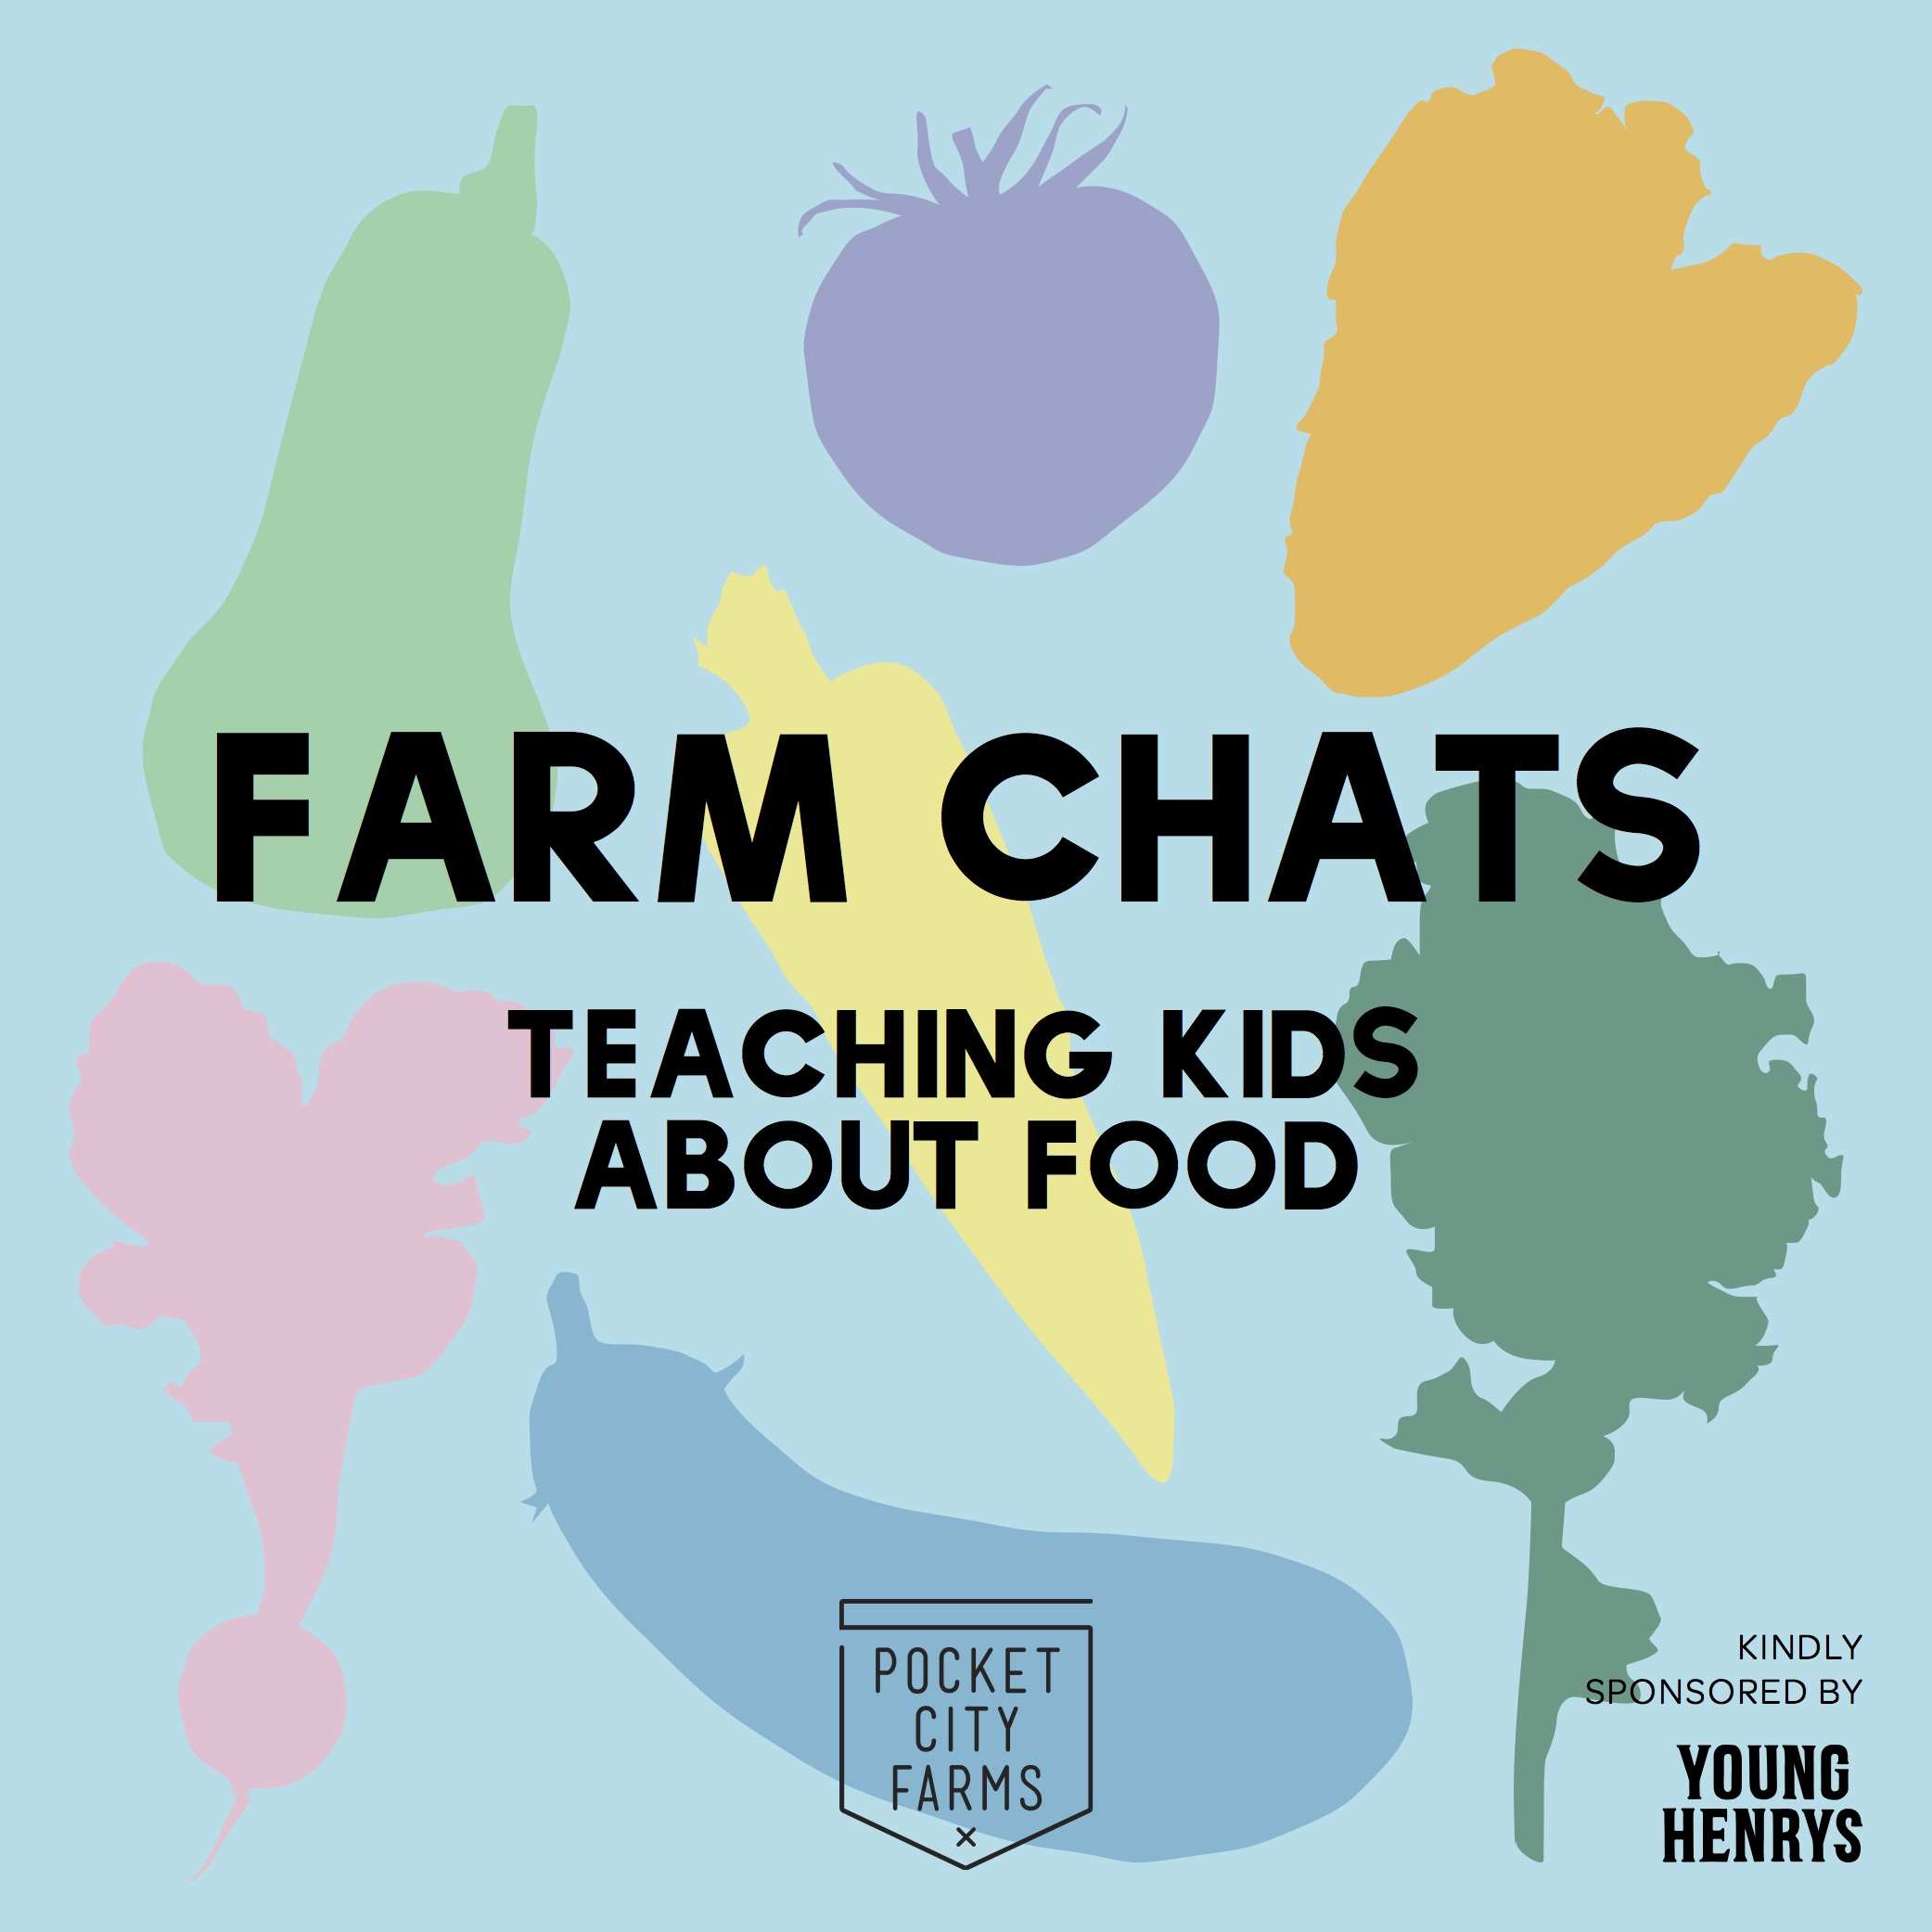 farmchatsvegetables-pcf-square-kids.jpg